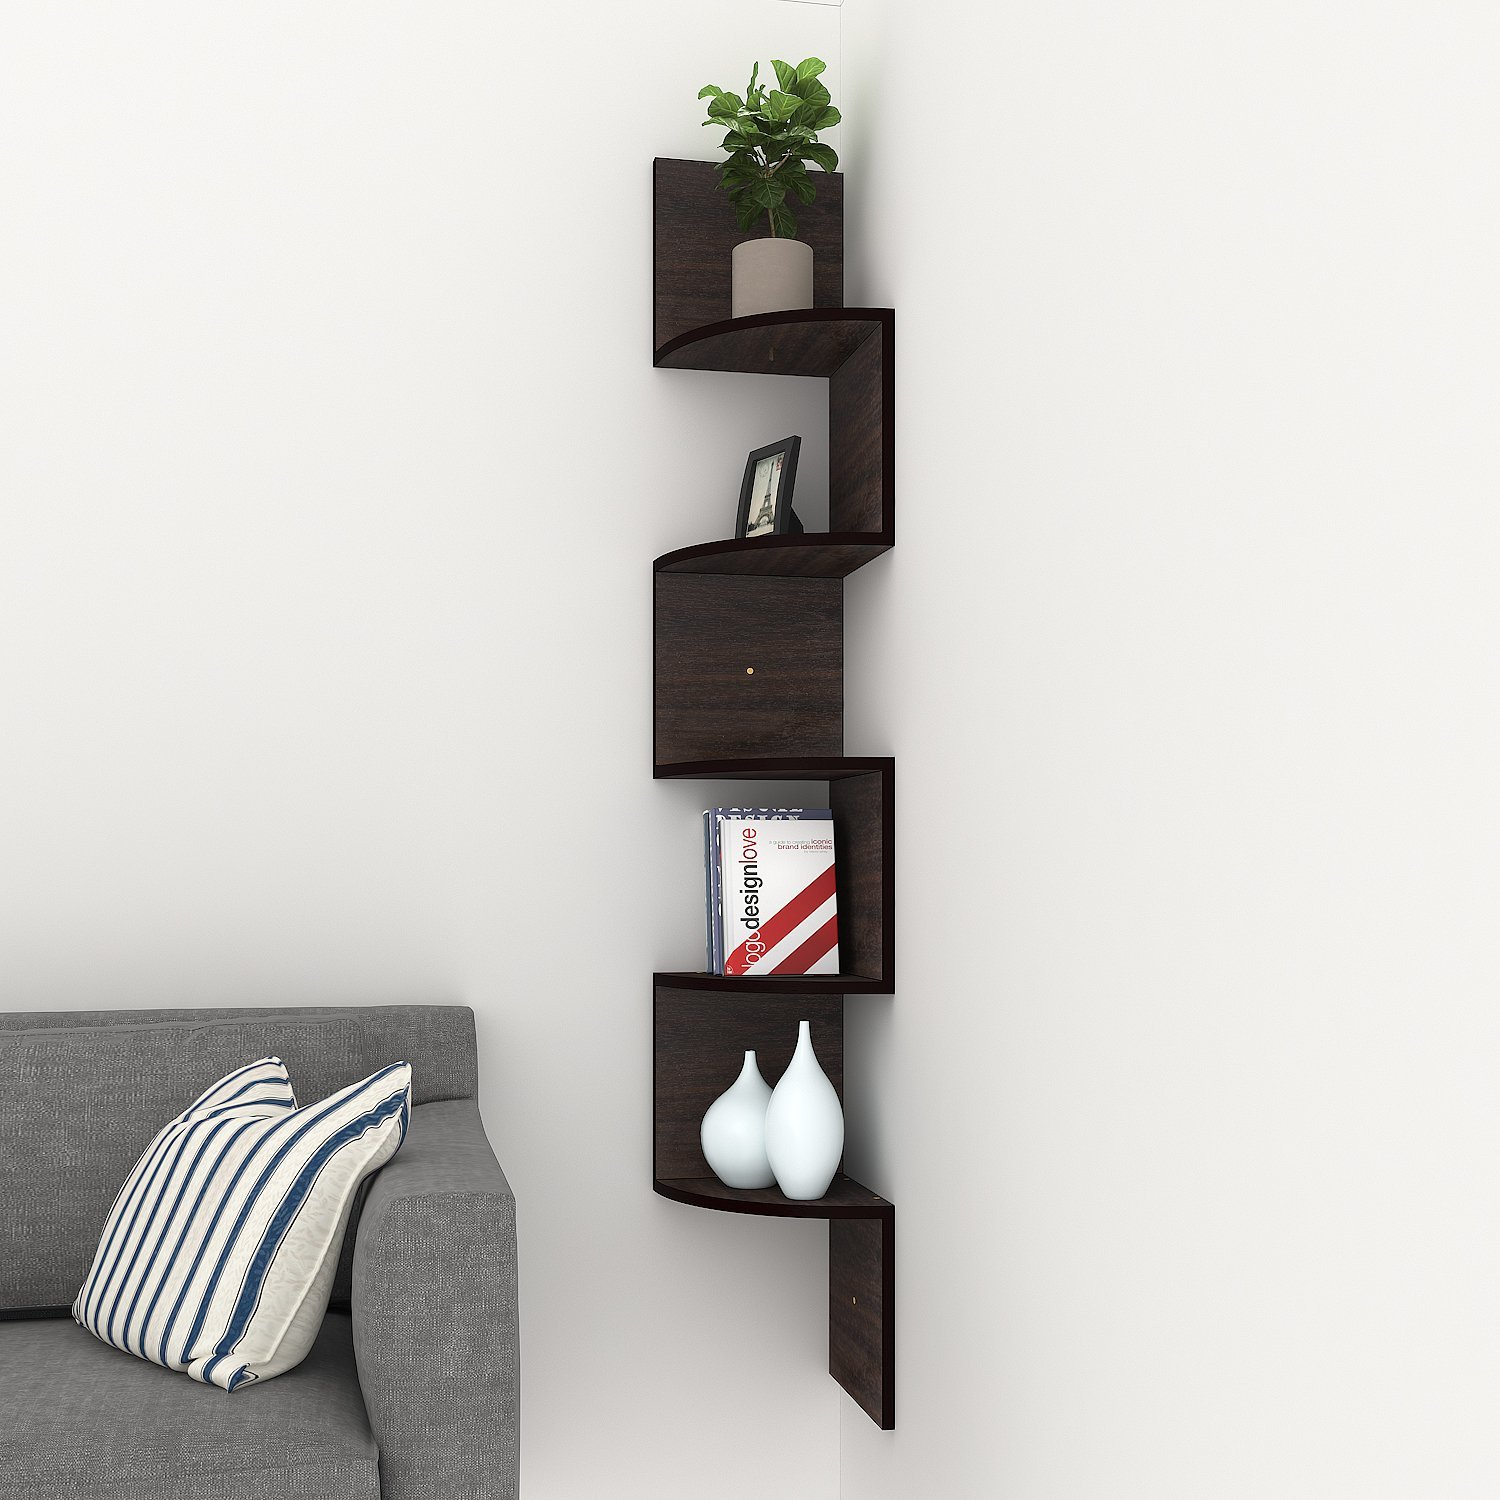 Homdox Corner Shelf, 5 Tier Corner Shelves Zig Zag Wall Mount Shelves  Floating Shelves For Living Room, Bedroom, Bathroom, Office, Kitchen  (coffee)